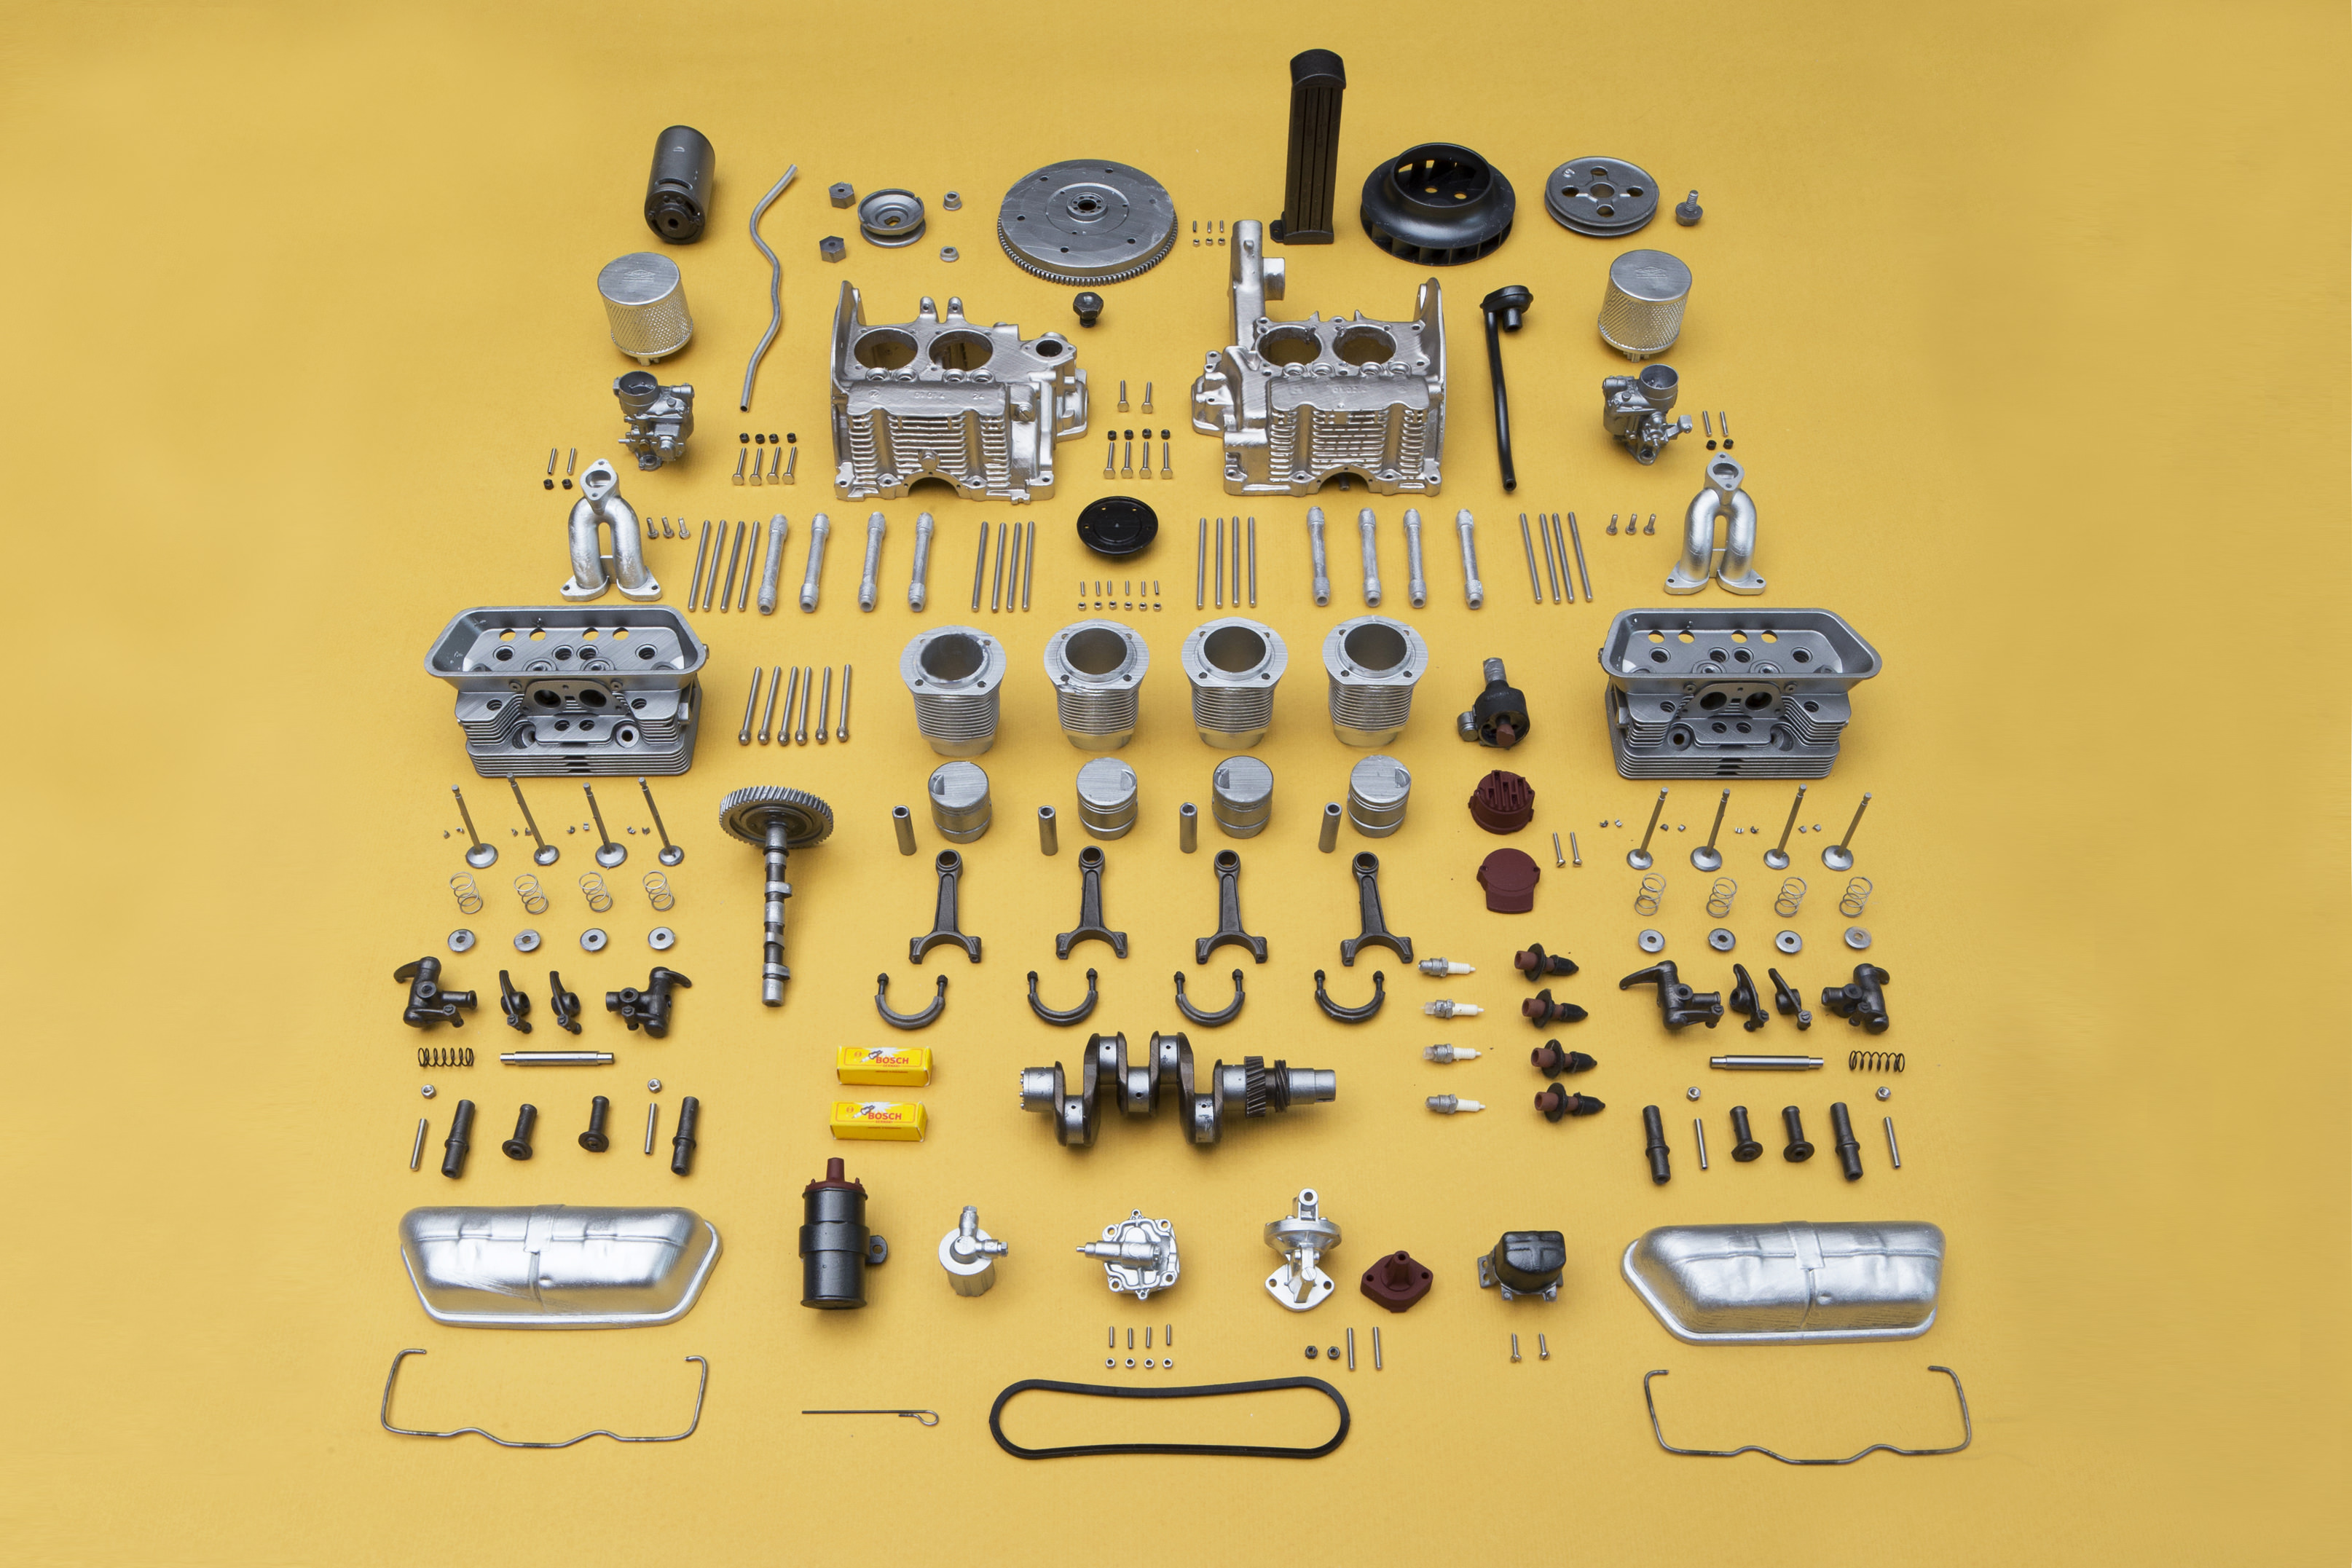 Knolling the 250 individual parts of the engine before assembly. The smallest part measures a mere 2 x 1.3 x 0.5 mm, while the largest engine blocks are 60 x 70 x 40 mm.